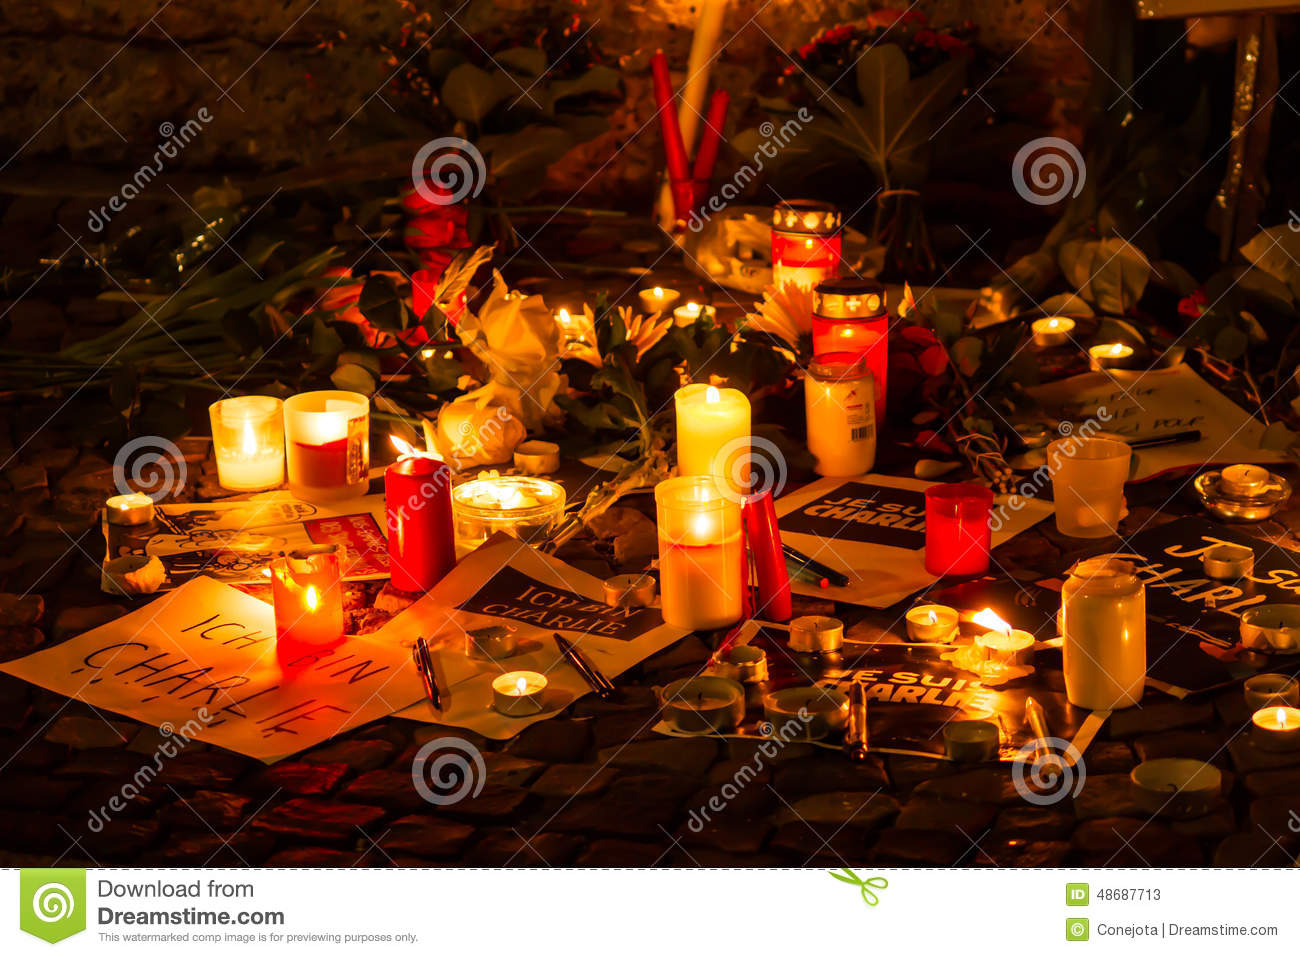 Charlie hebdo terrorism attack editorial stock photo for Design attack berlin